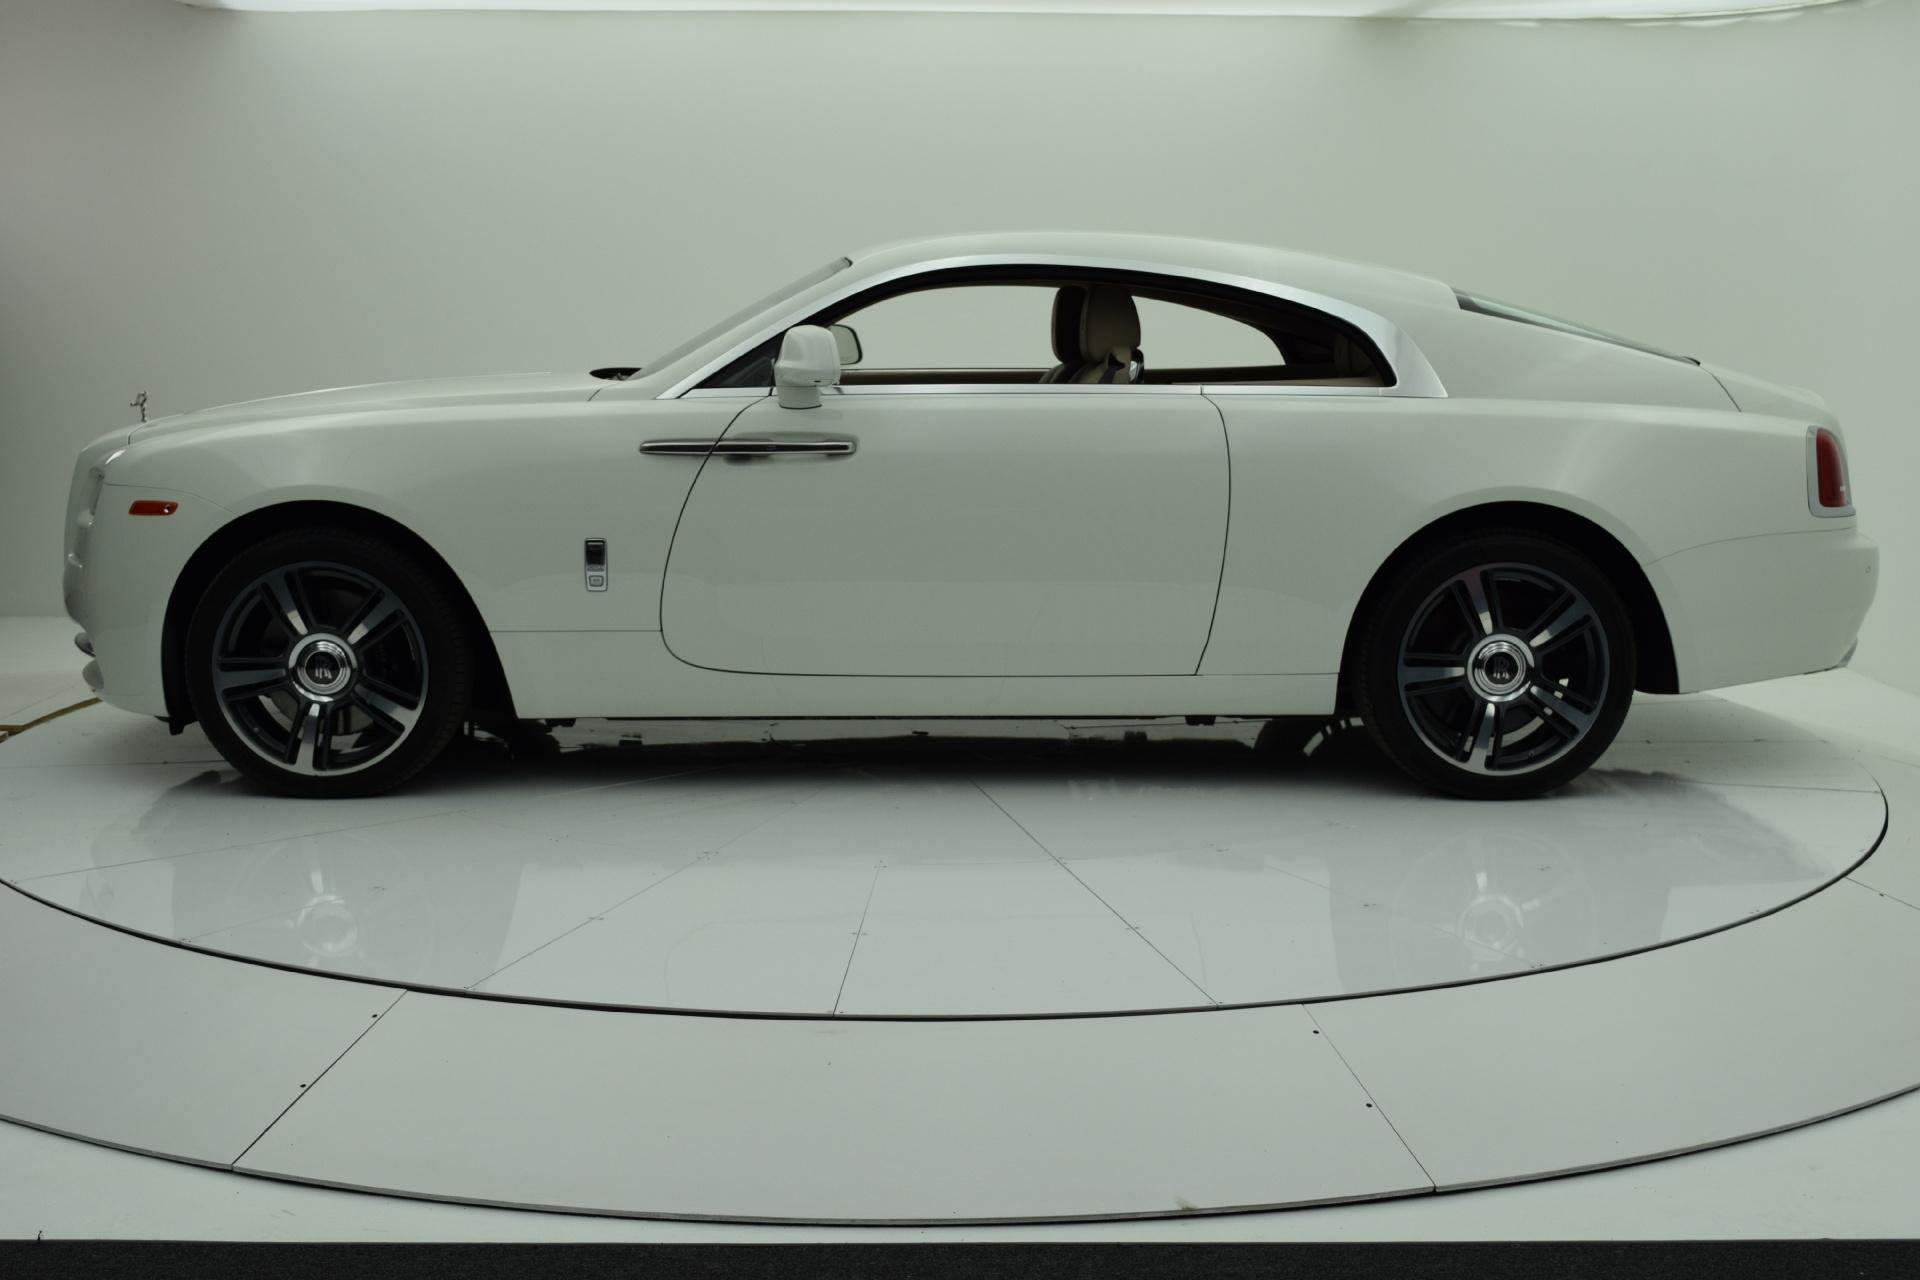 new 2014 rolls royce wraith for sale 270 000 fc. Black Bedroom Furniture Sets. Home Design Ideas